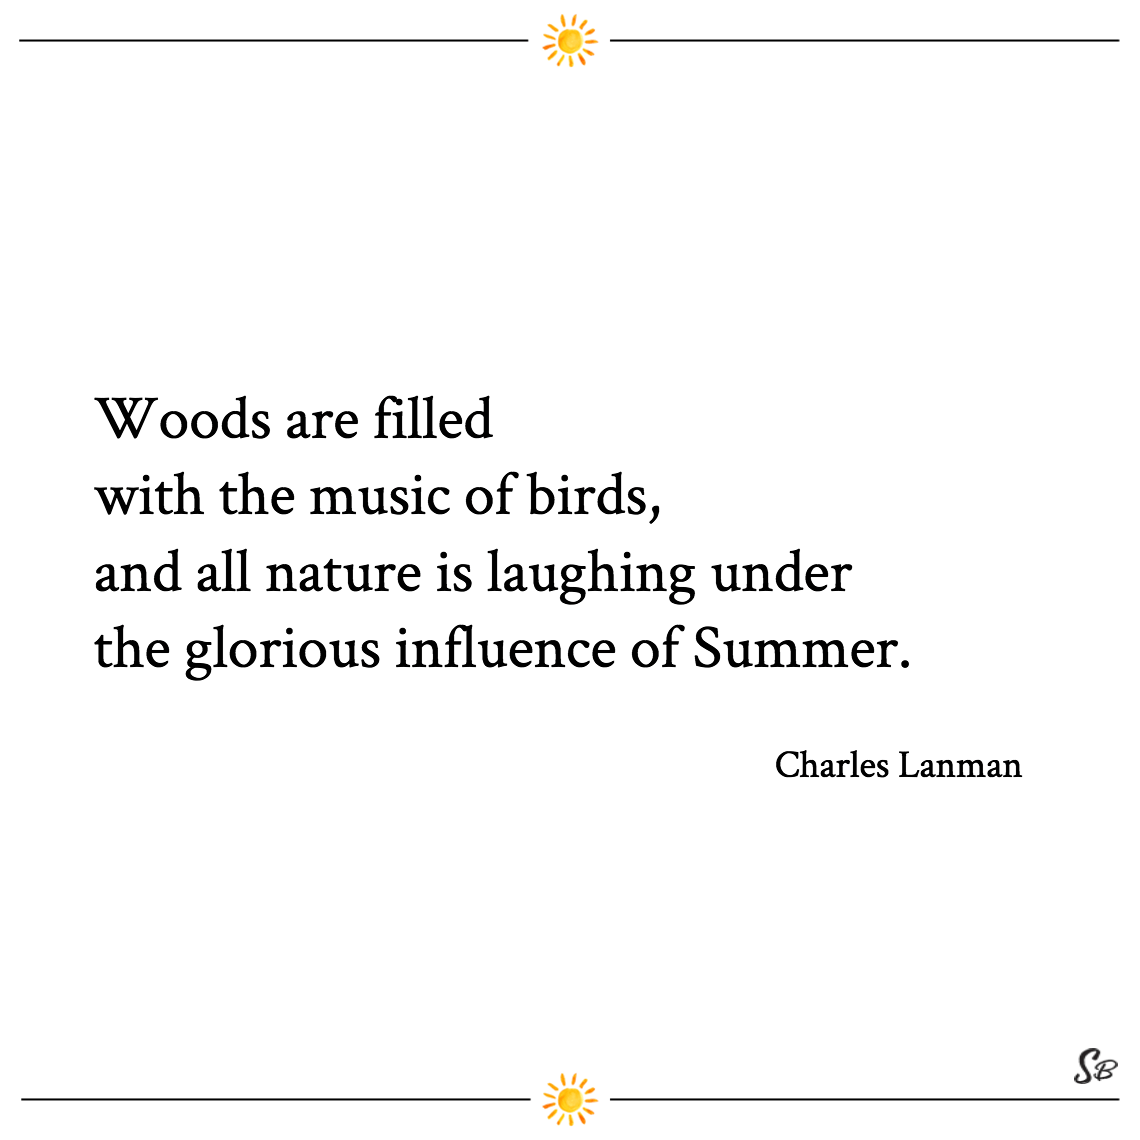 Woods are filled with the music of birds, and all nature is laughing under the glorious influence of summer. charles lanman